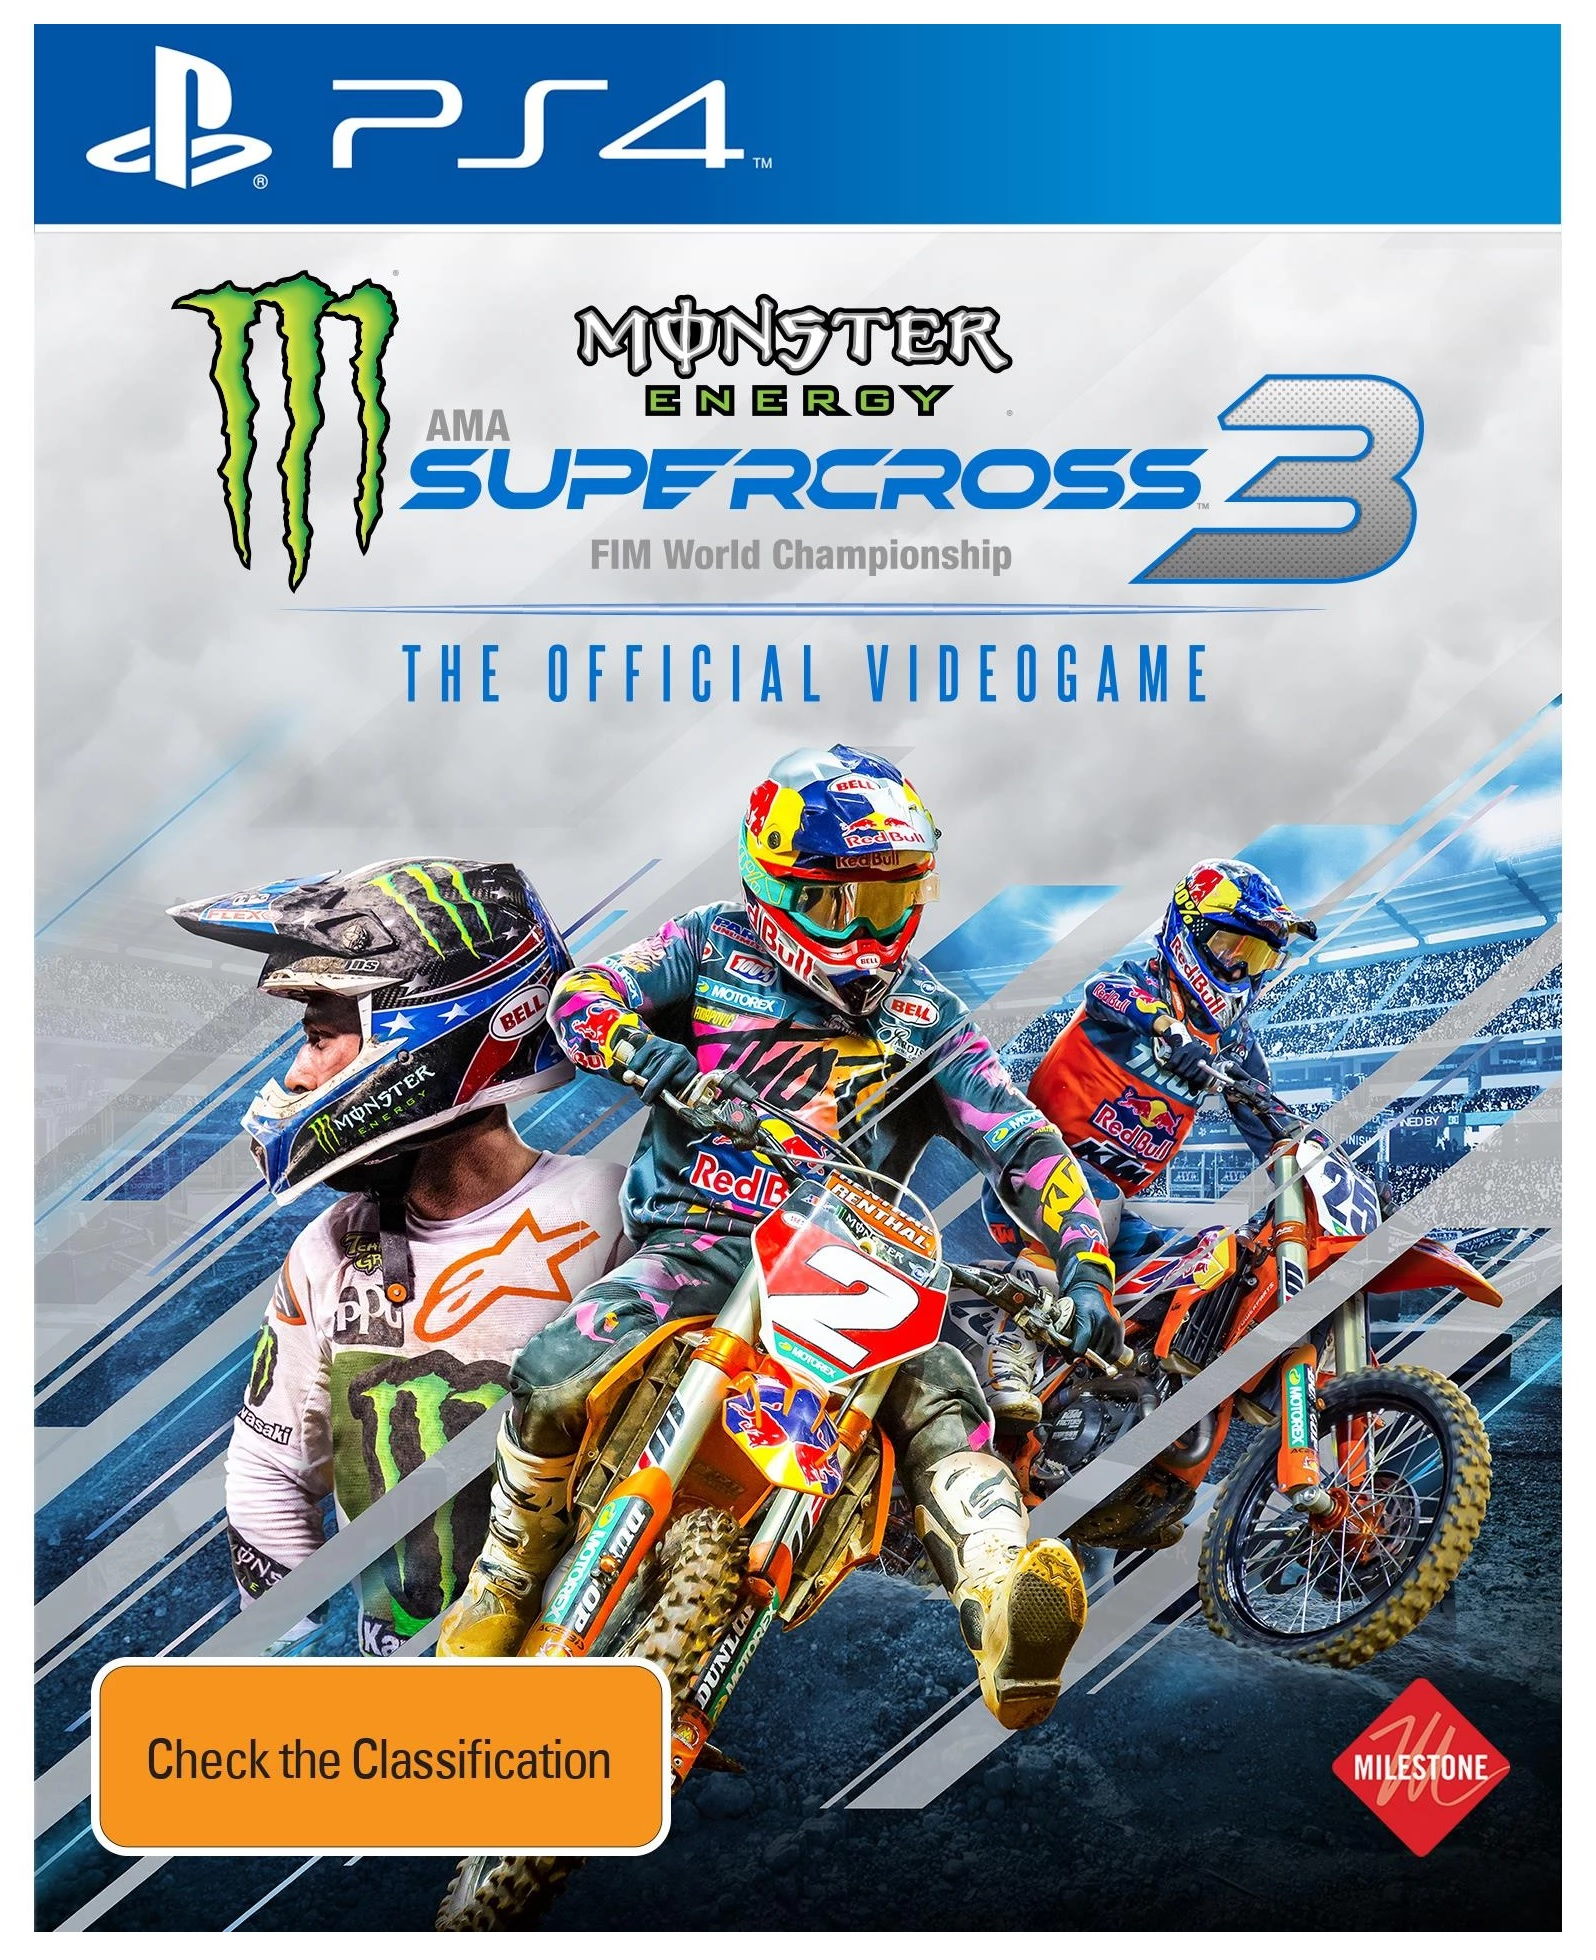 Milestone Monster Energy Supercross The Official Videogame 3 PS4 Playstation 4 Game